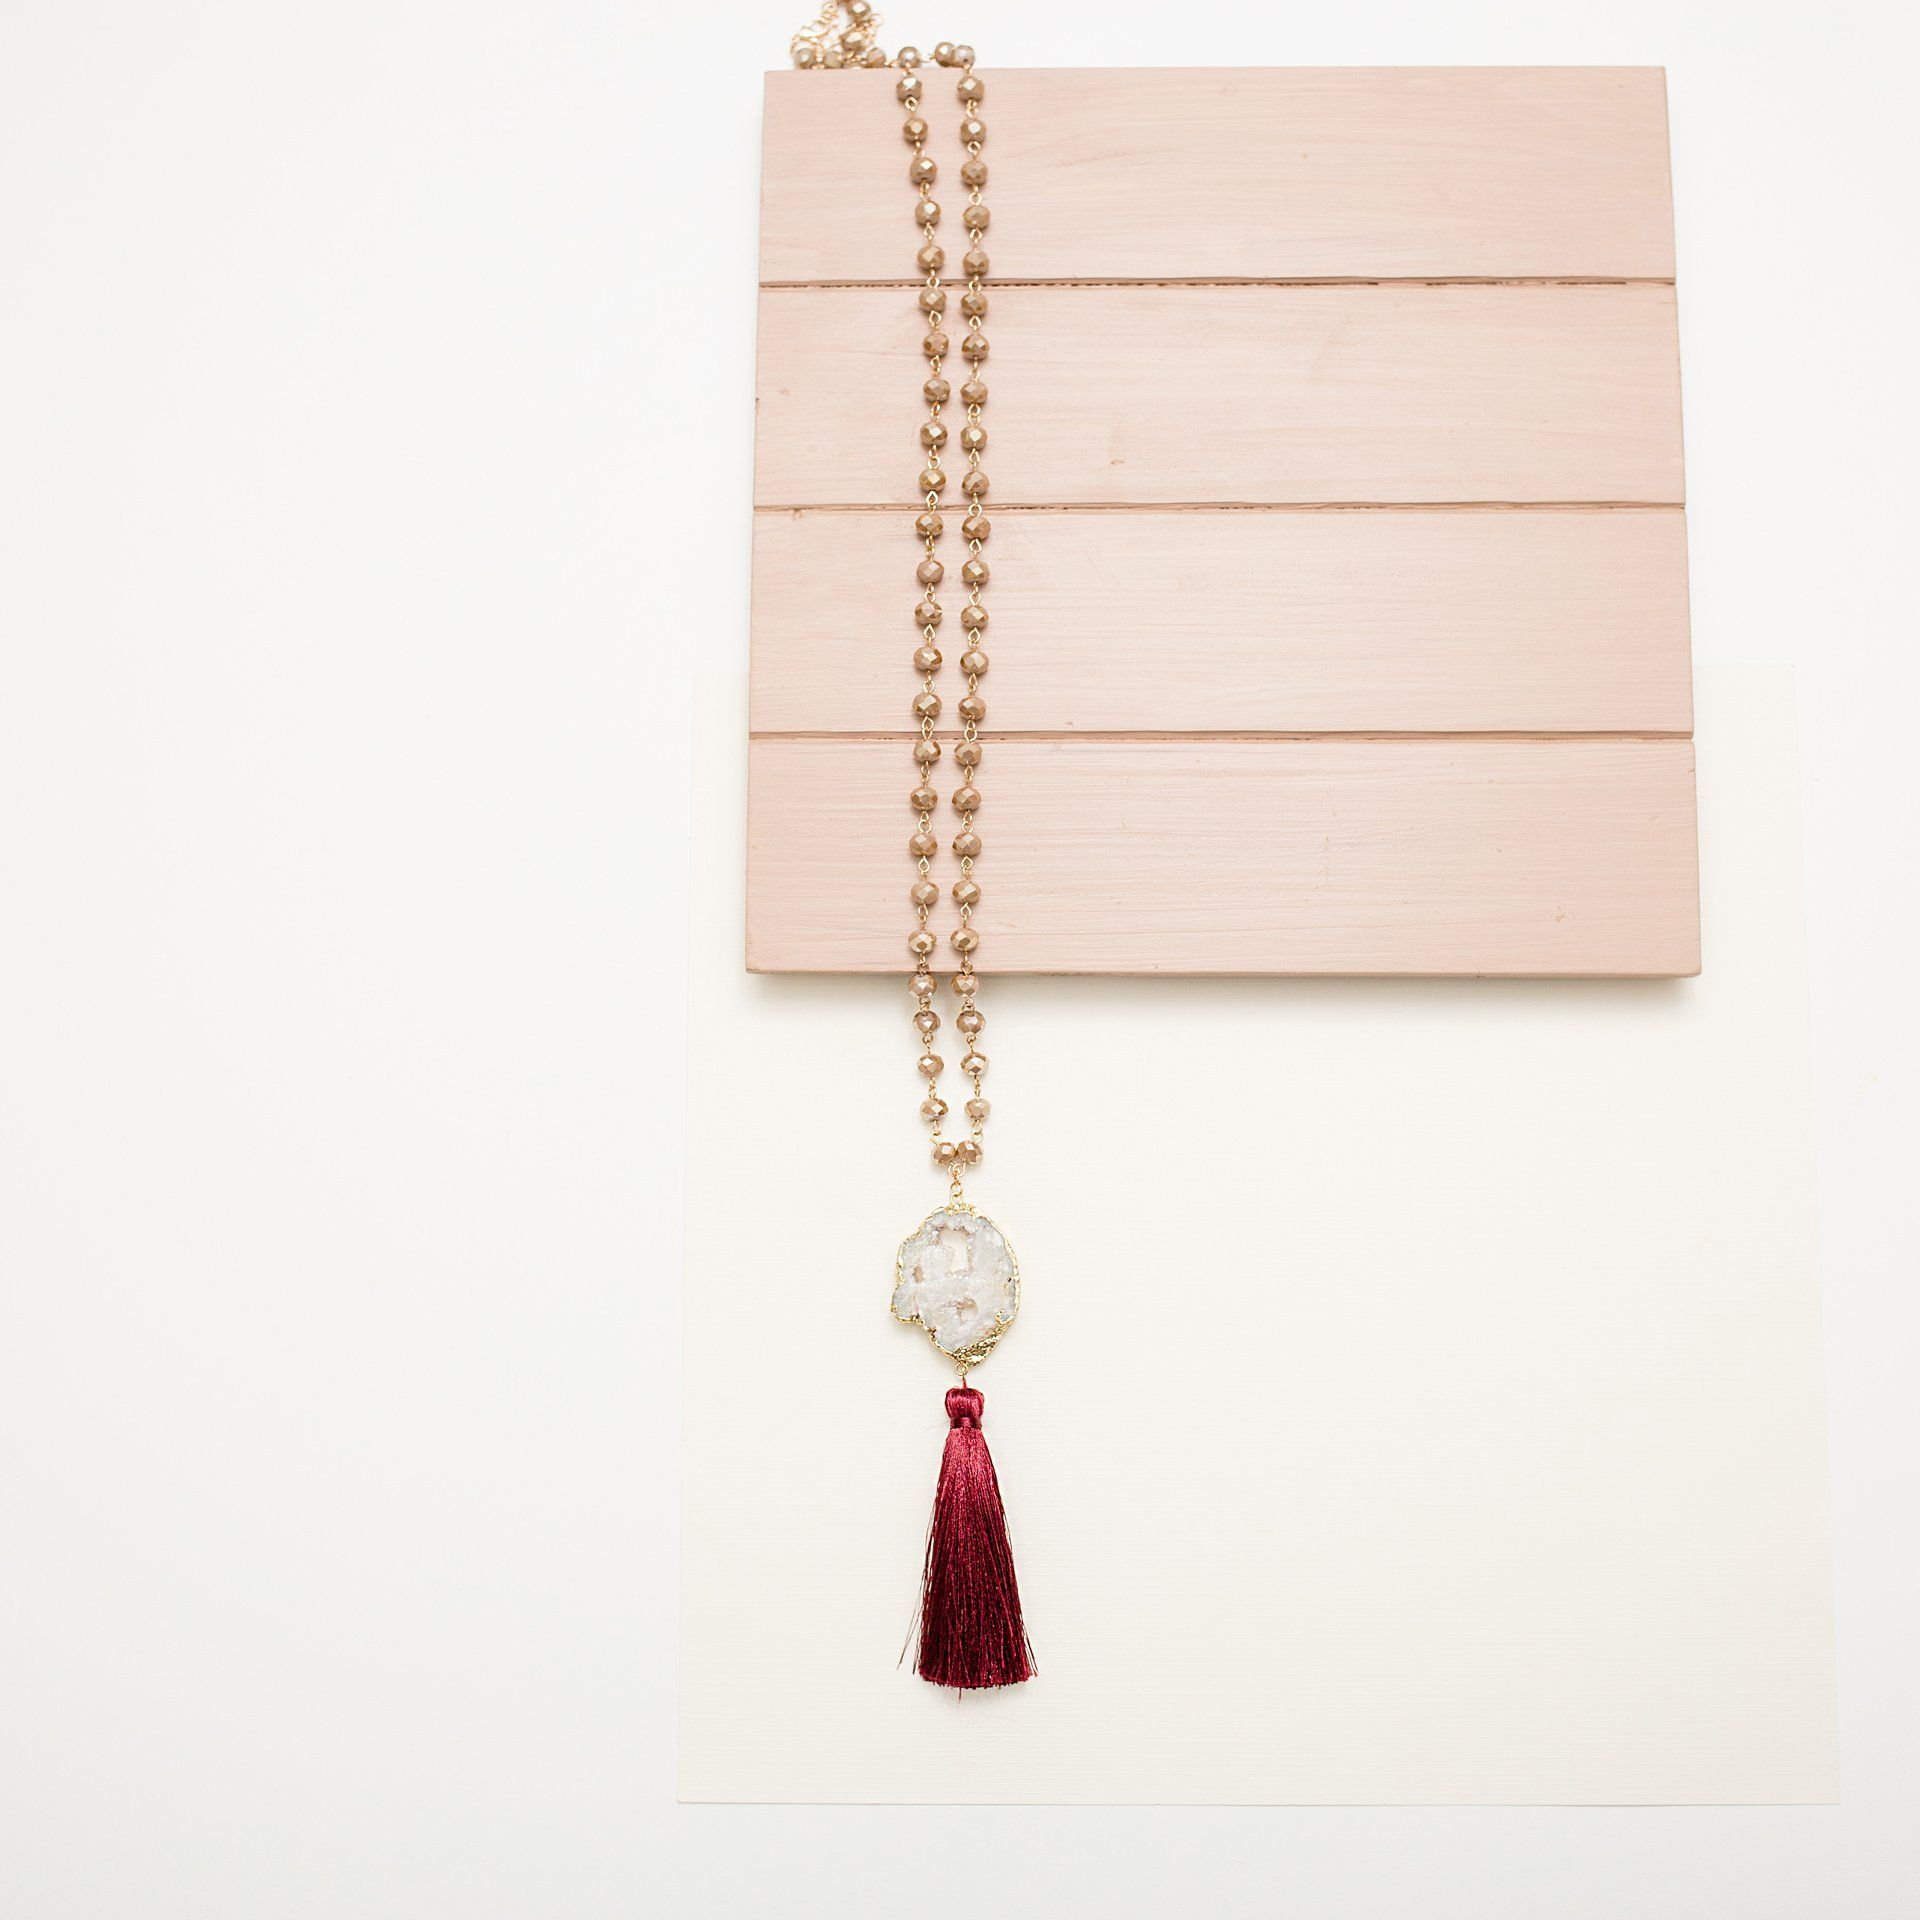 'A Glass of Port Wine' Crystal and Tassel Pendant Necklace - Arlo and Arrows